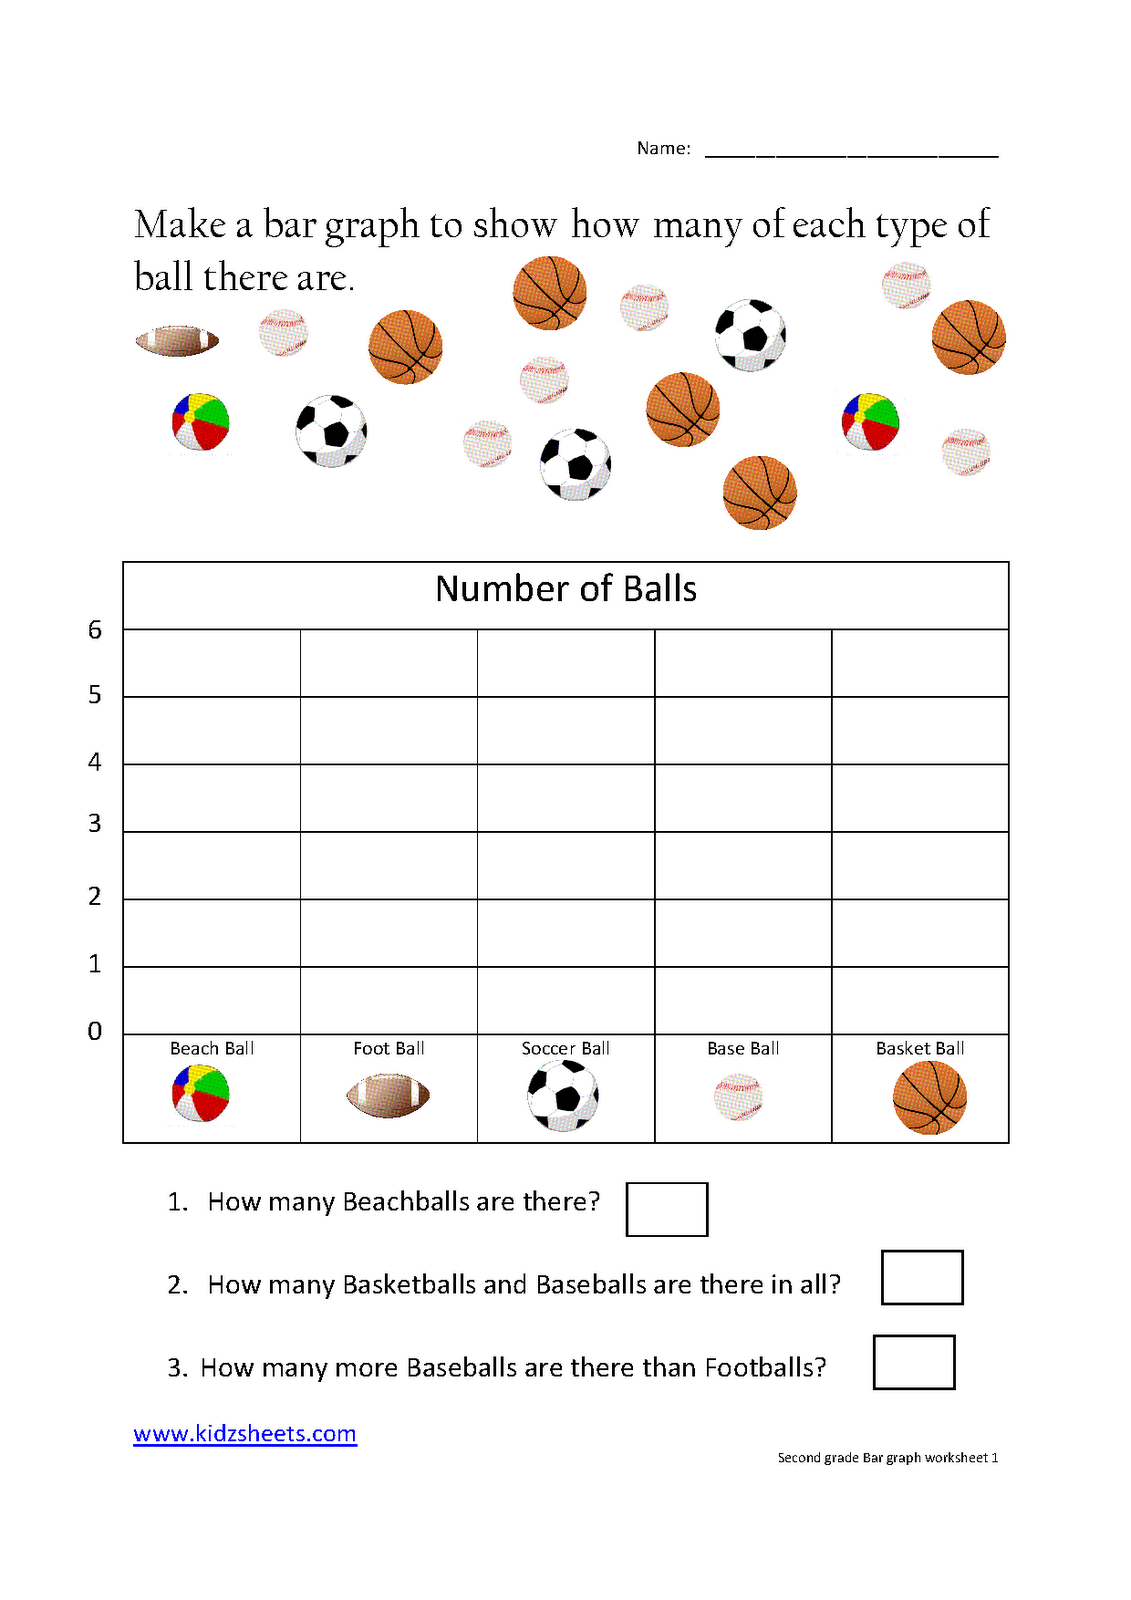 Kidz Worksheets Second Grade Bar Graph Worksheet1 – Graphing Math Worksheets